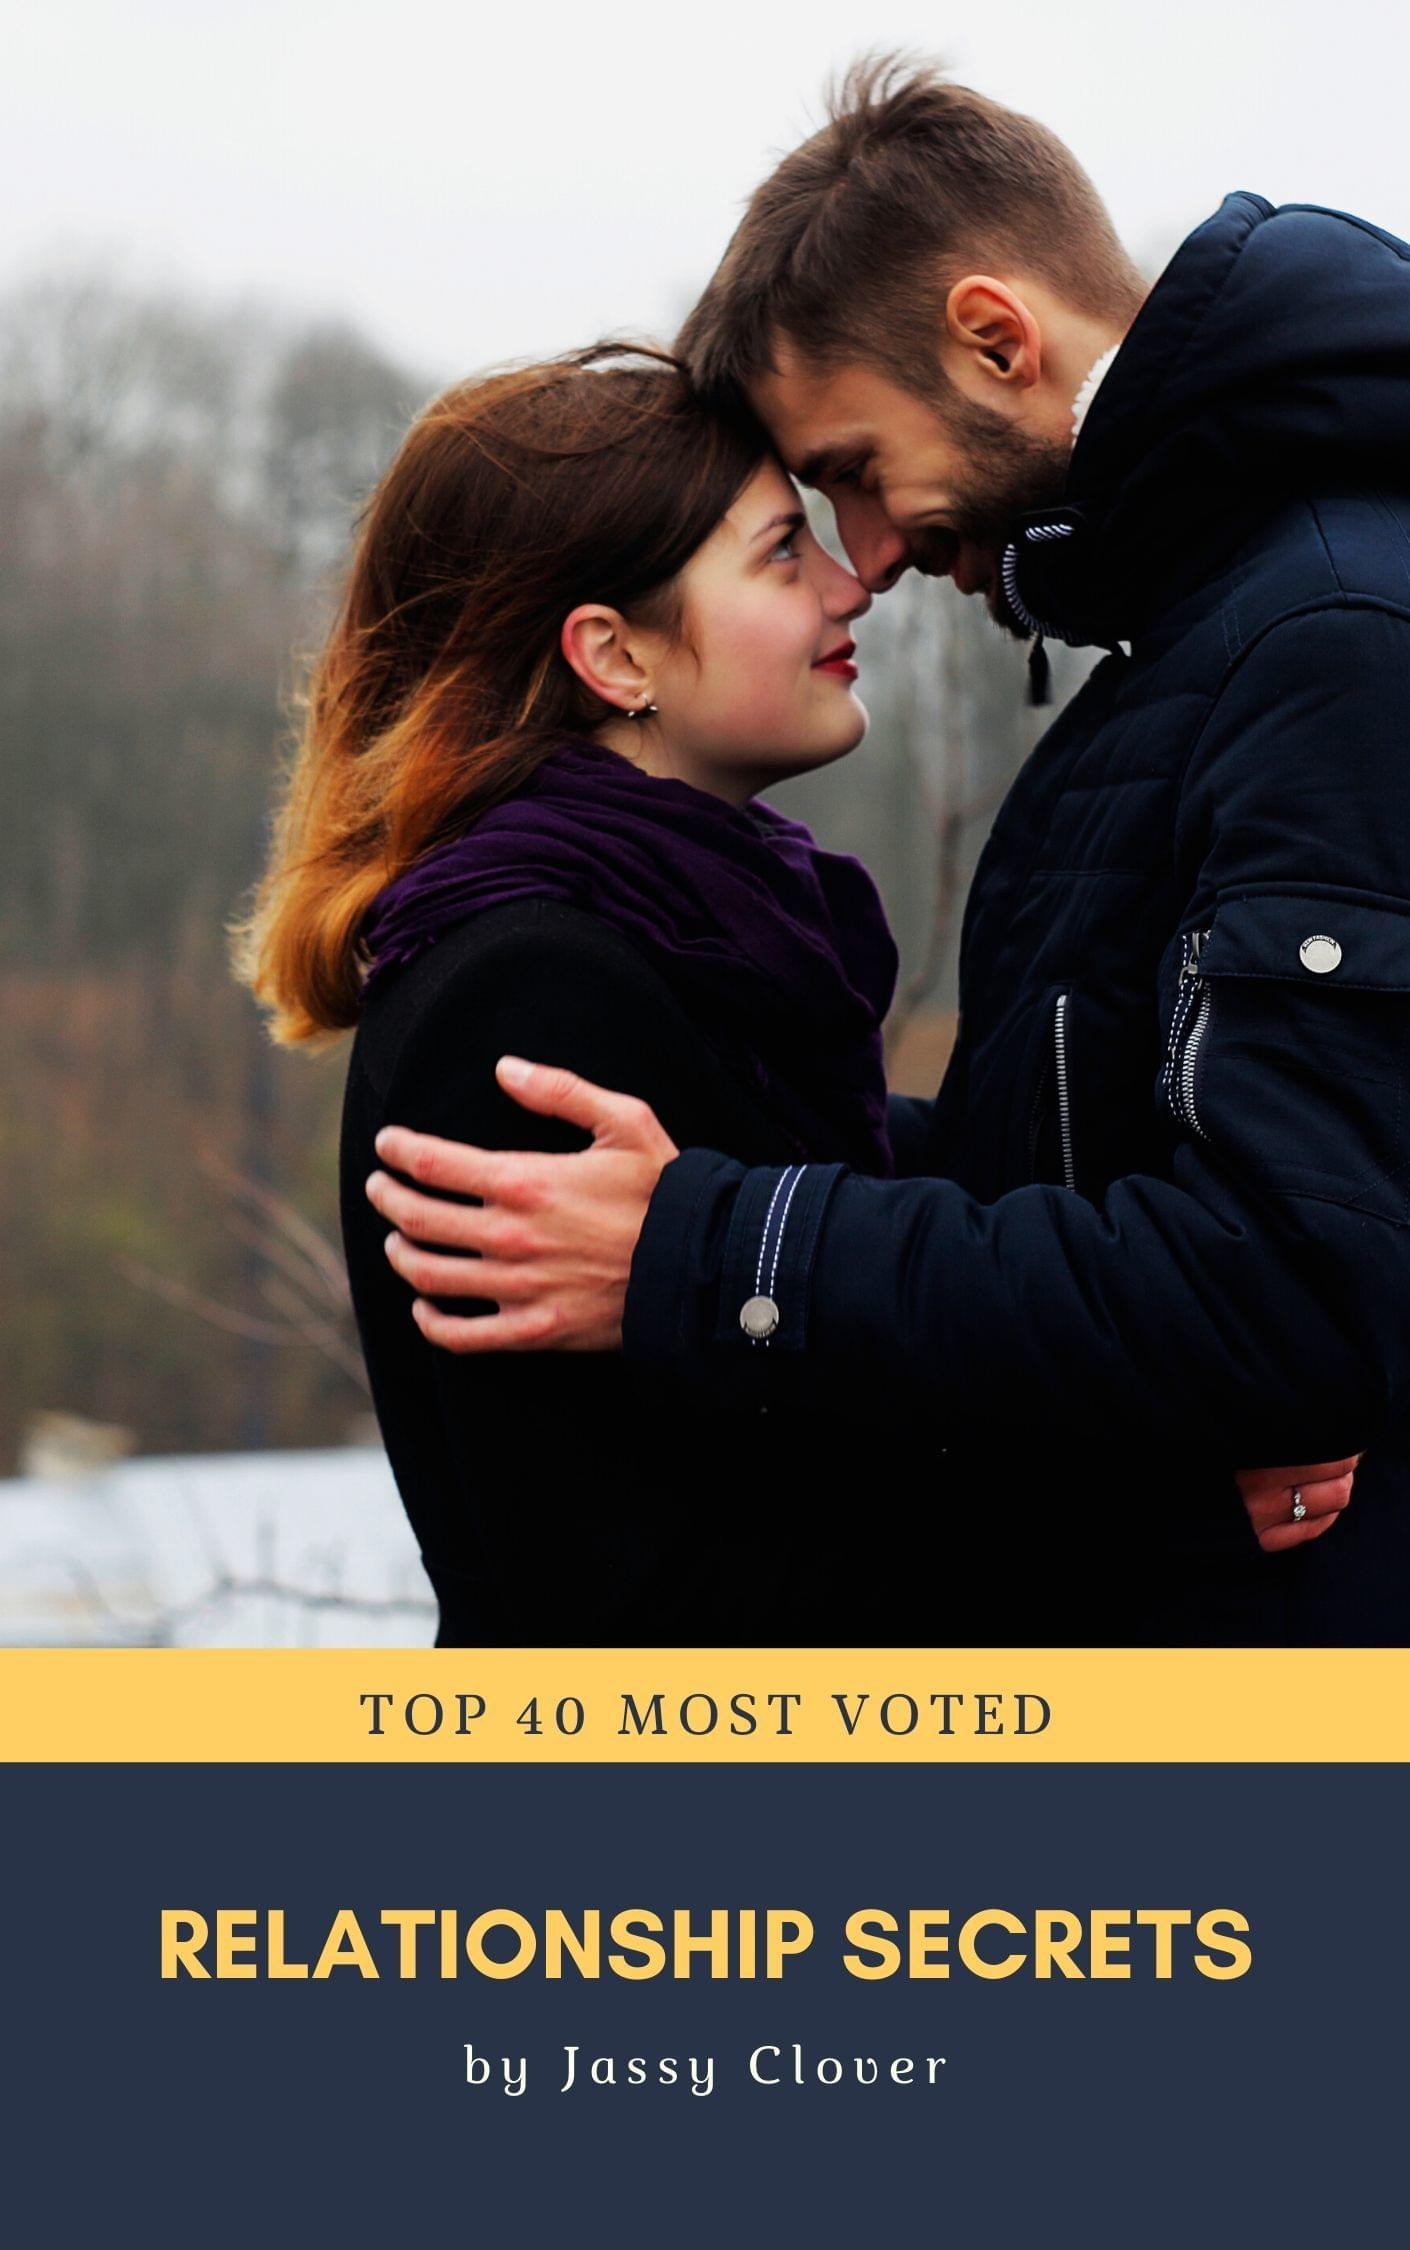 top 40 most voted relationship secrets